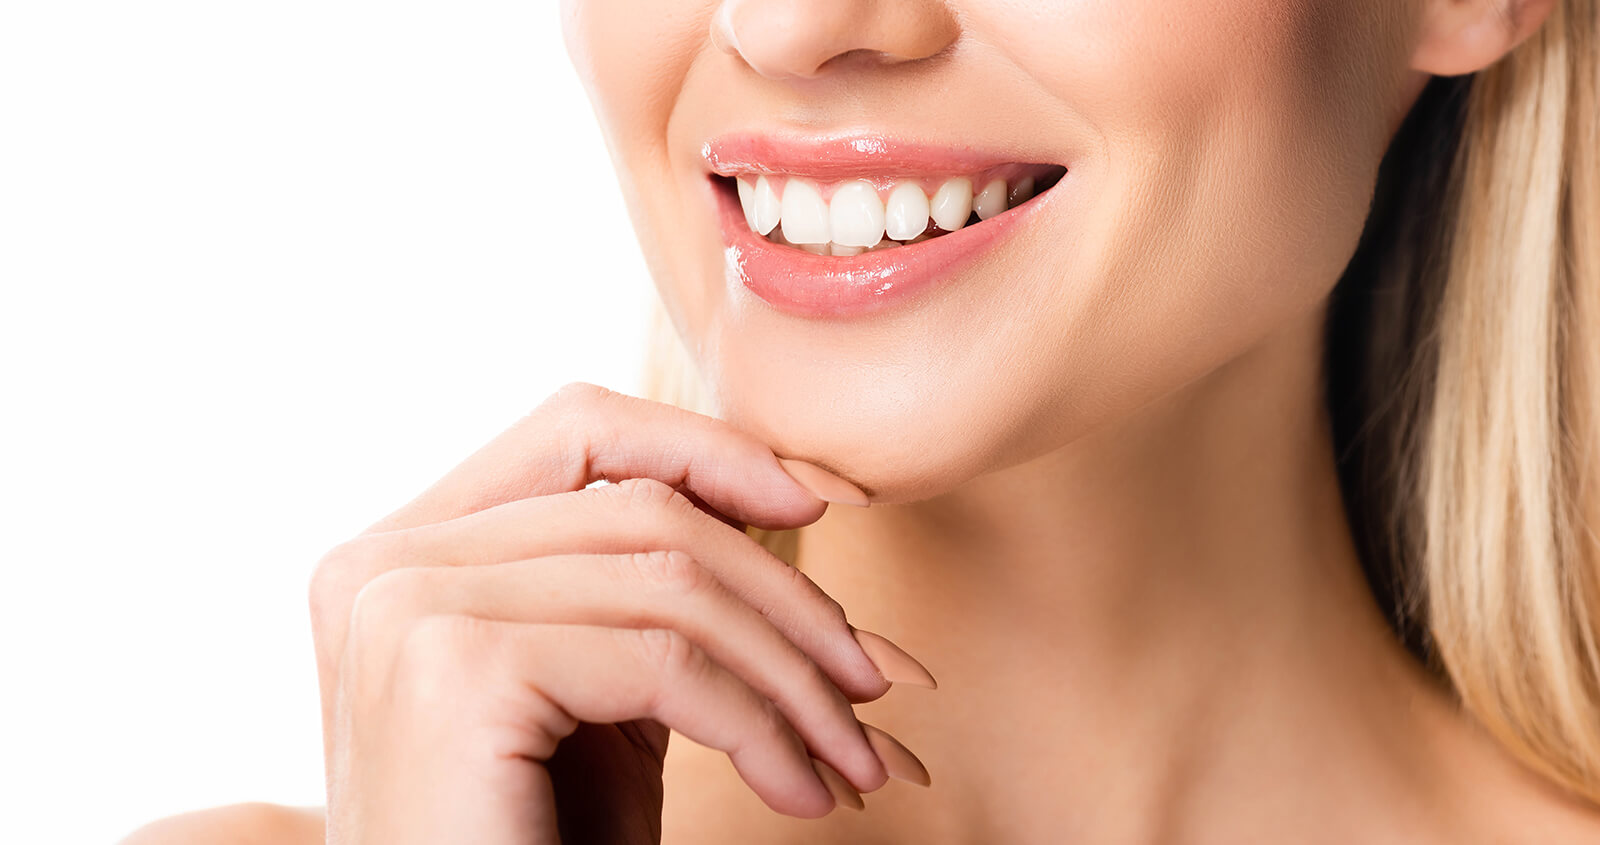 Get a picture-perfect smile with professional teeth whitening in Dunedin, FL